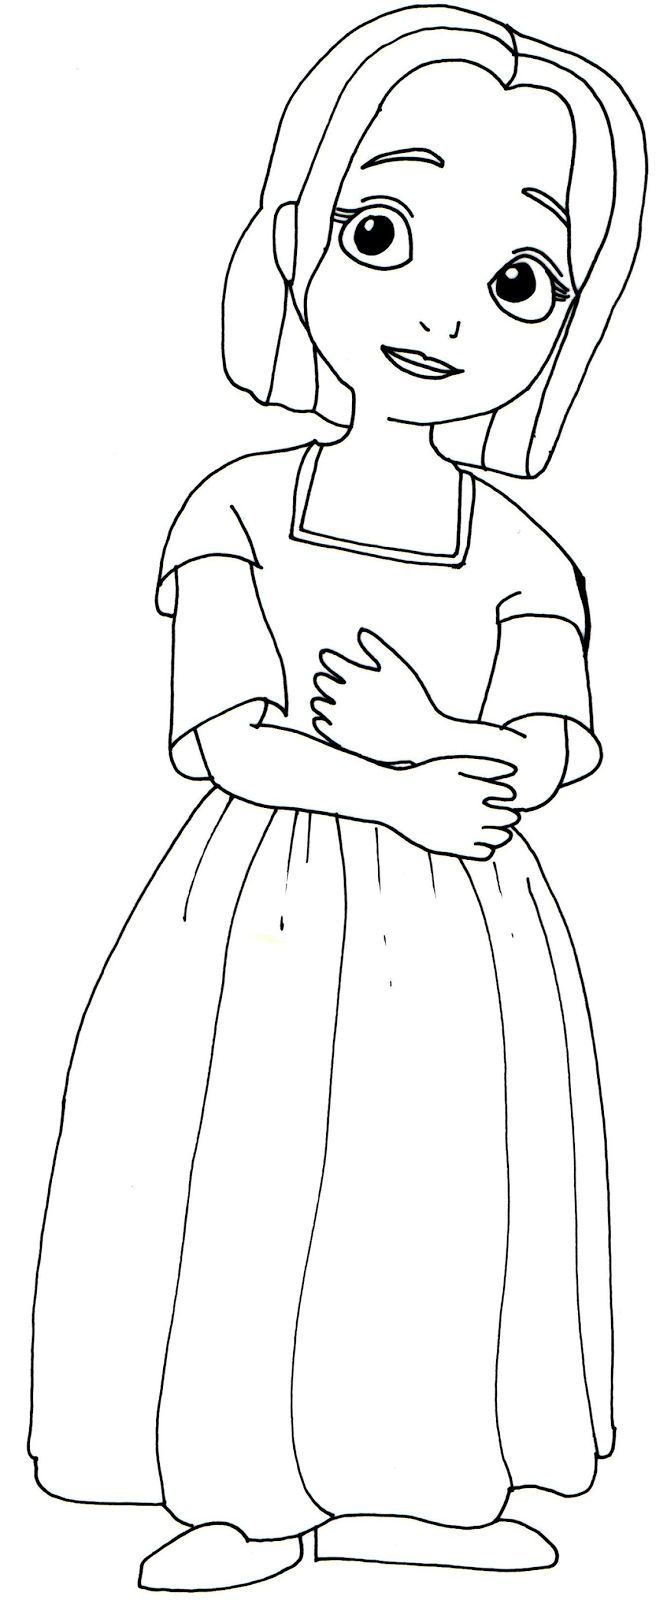 Sofia The First Coloring Pages Jade Disney Coloring Pages Printables Coloring Books Sofia The First Characters